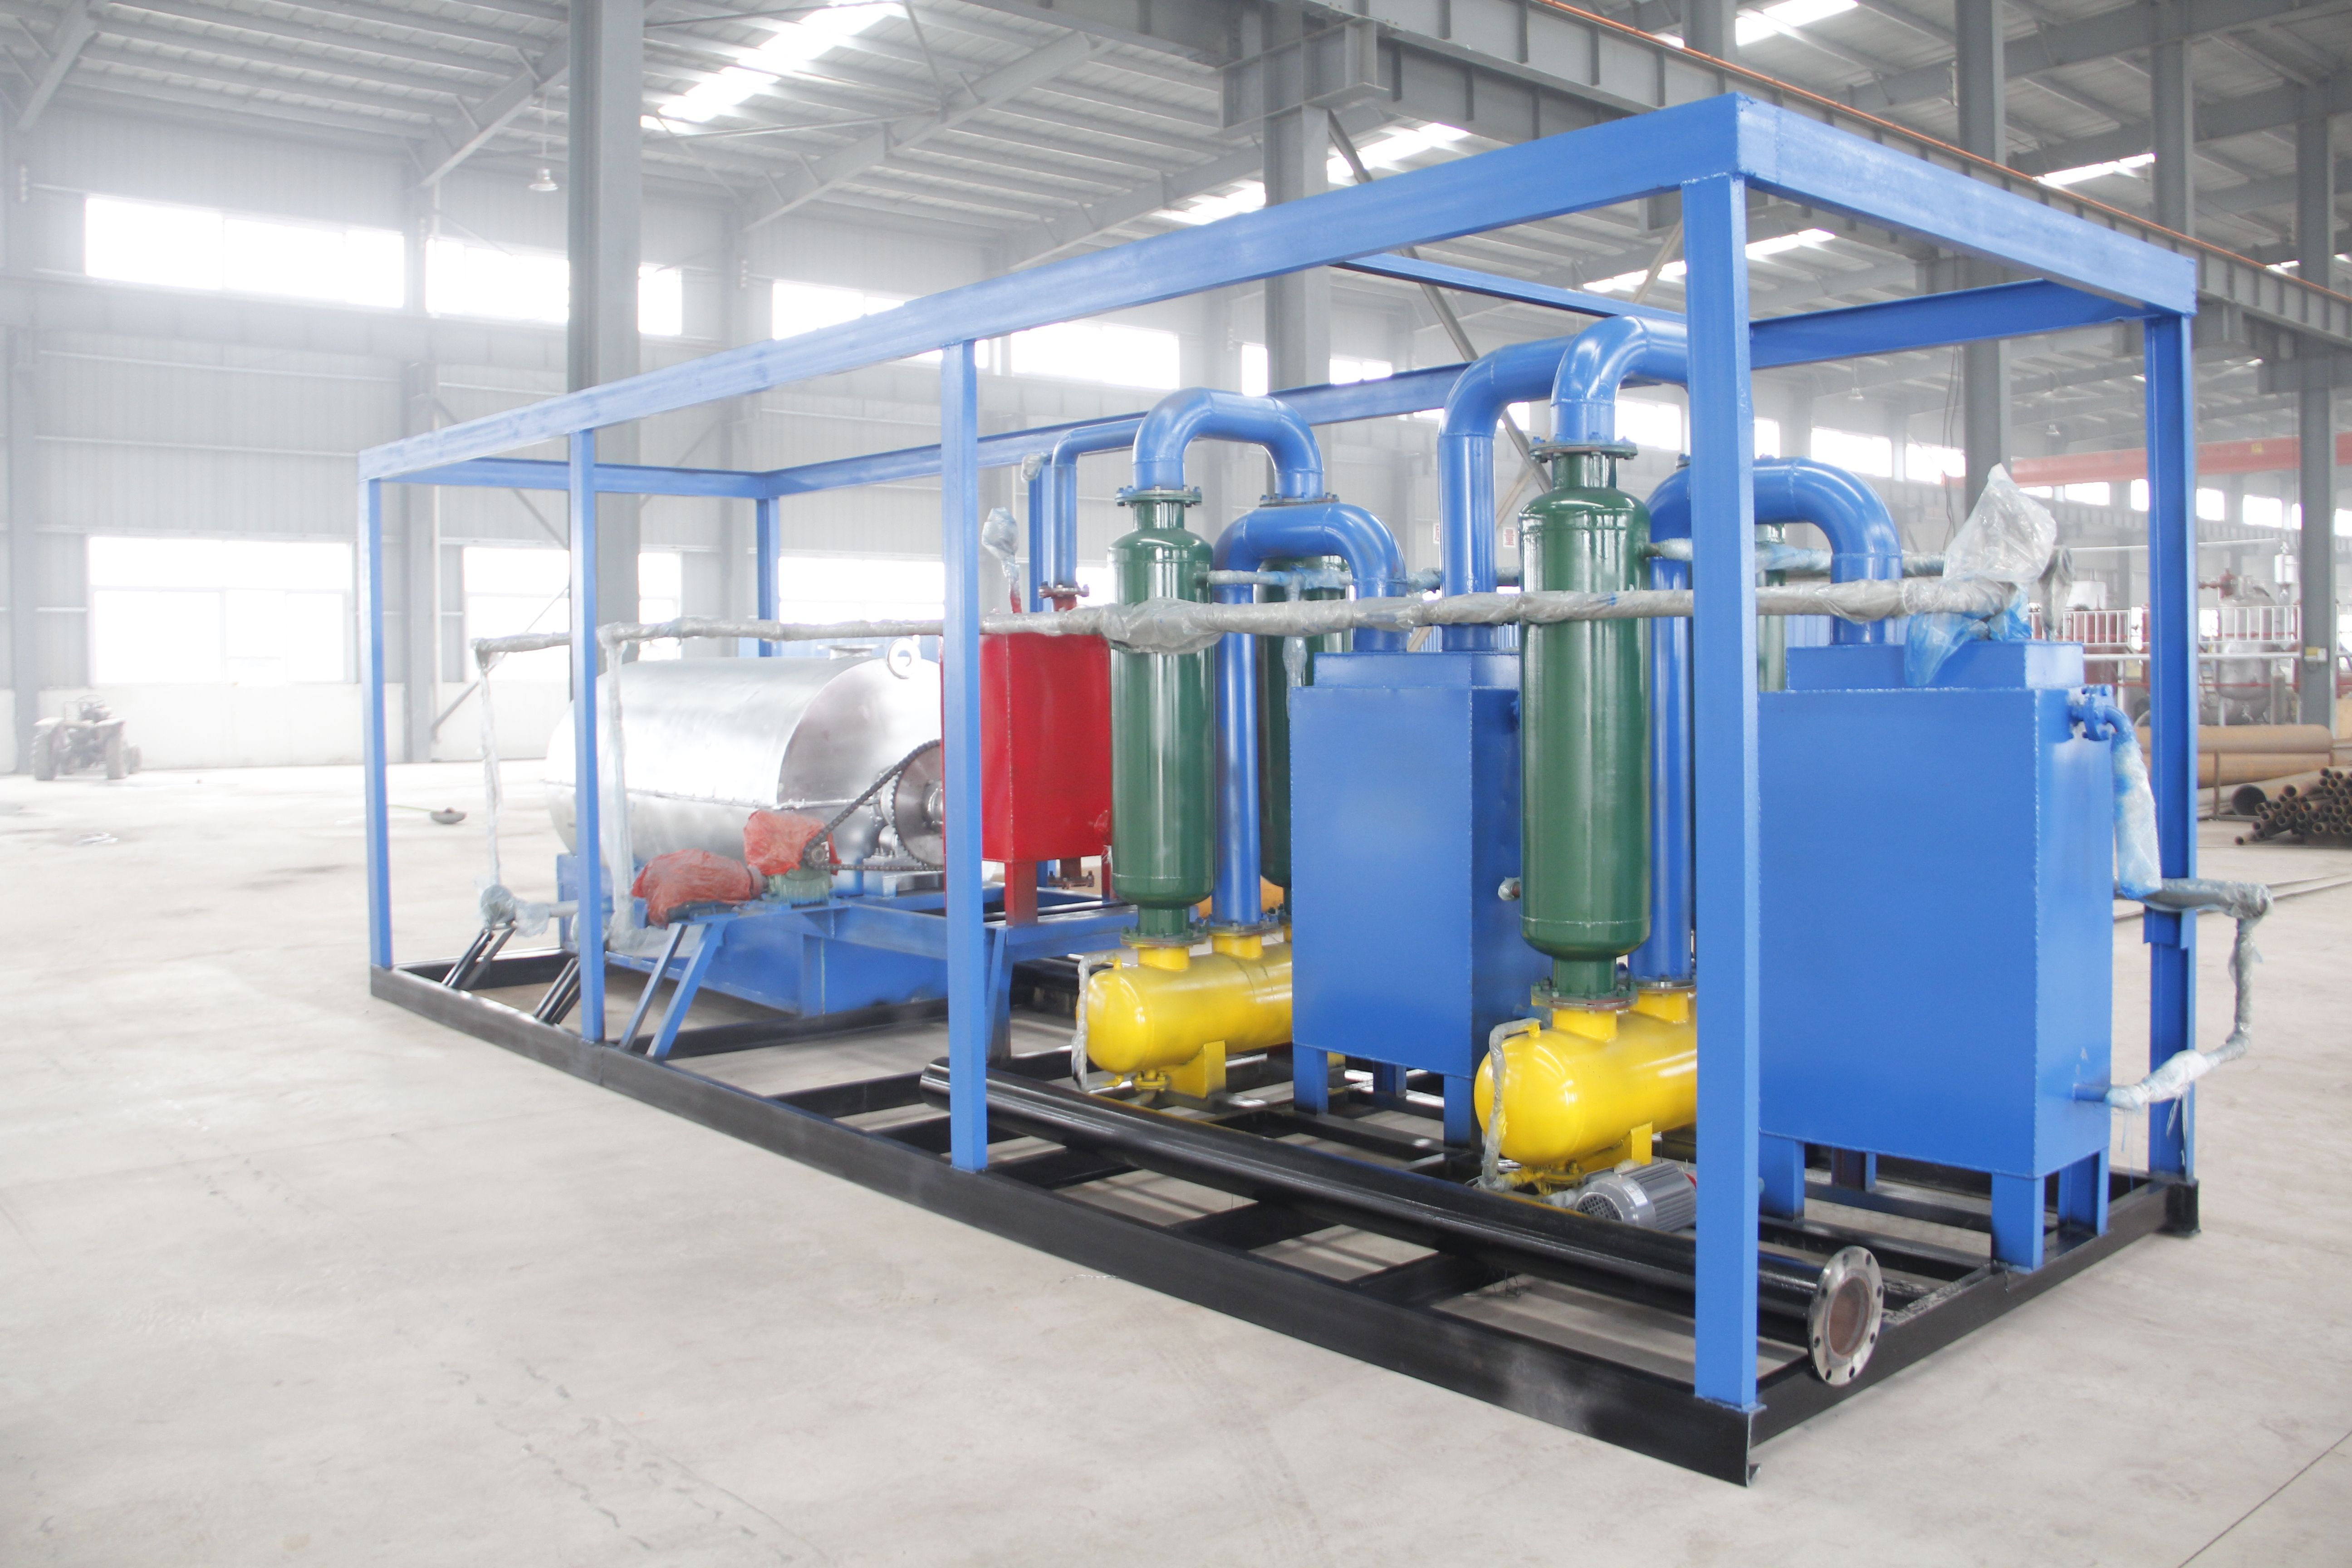 200-300kg small unit waste tyre pyrolysis plant The waste